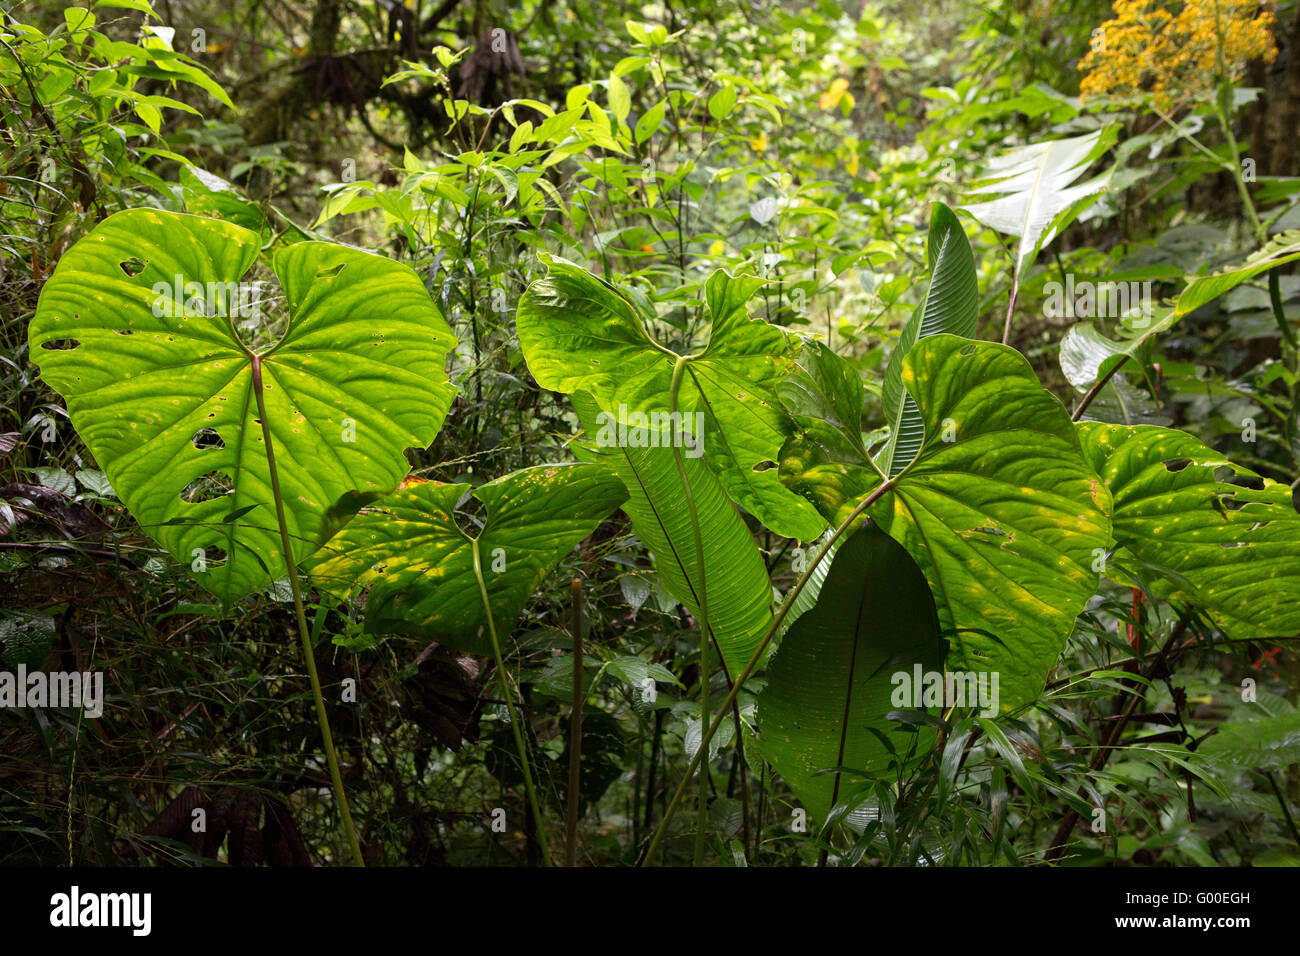 Heart-shaped philodendron leaves in the rainforest close to the Parque Nacional Volcan Poas (Poas Volcano National - Stock Image